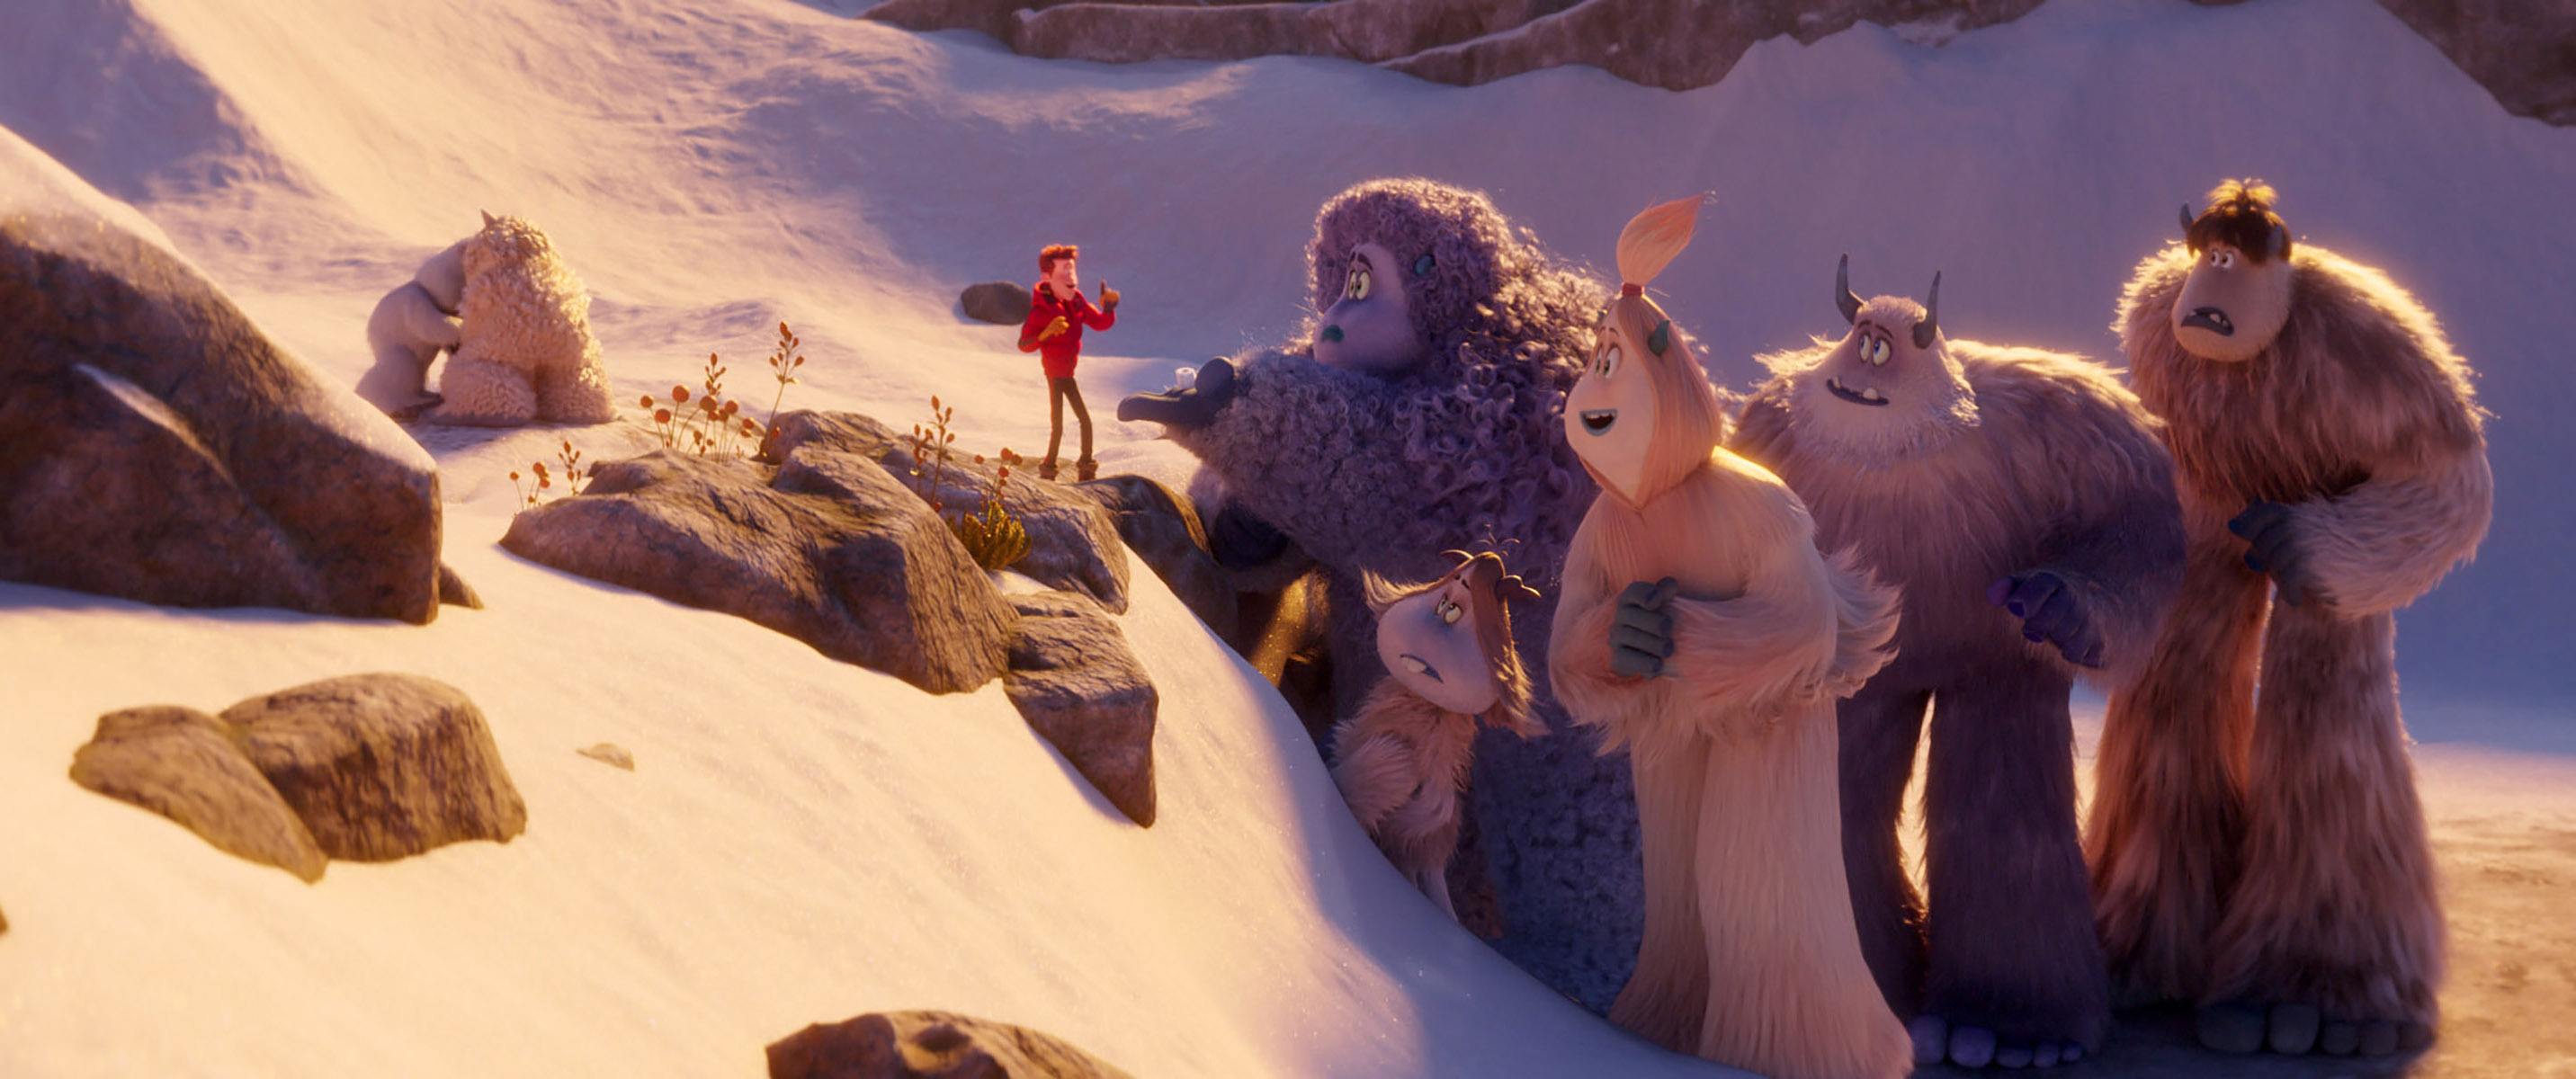 Smallfoot Gallery 11